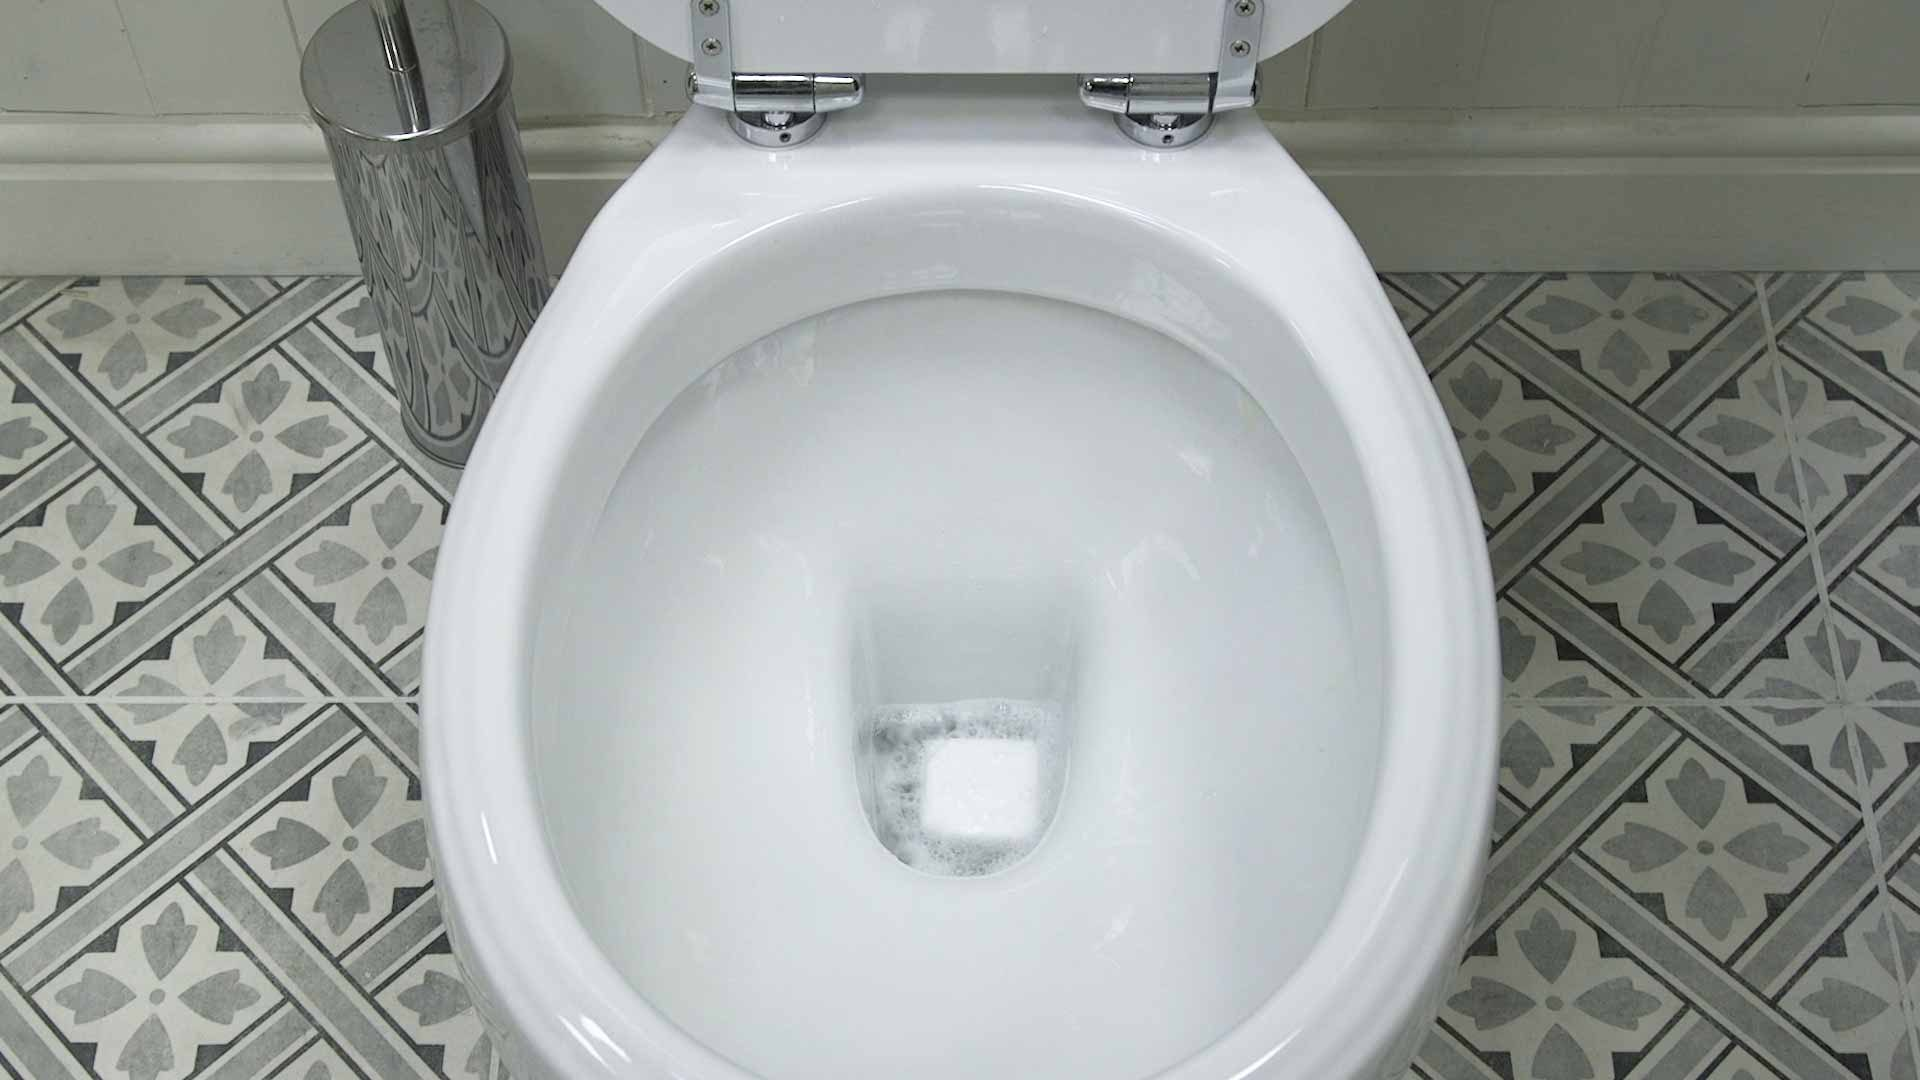 Drop into your toilet